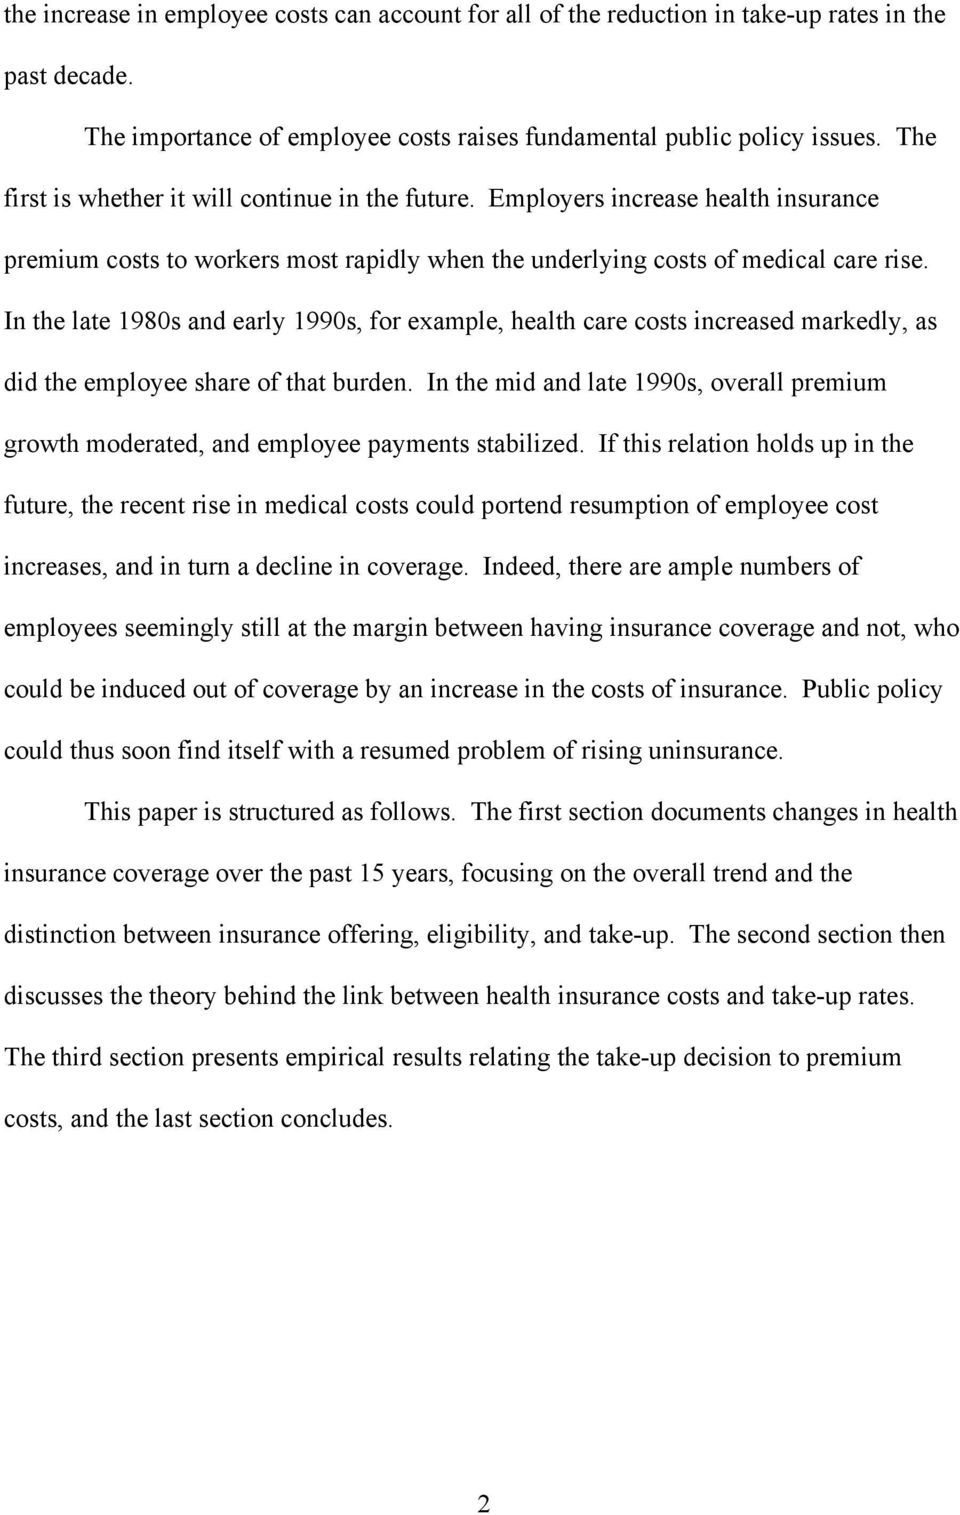 In the late 1980s and early 1990s, for example, health care costs increased markedly, as did the employee share of that burden.